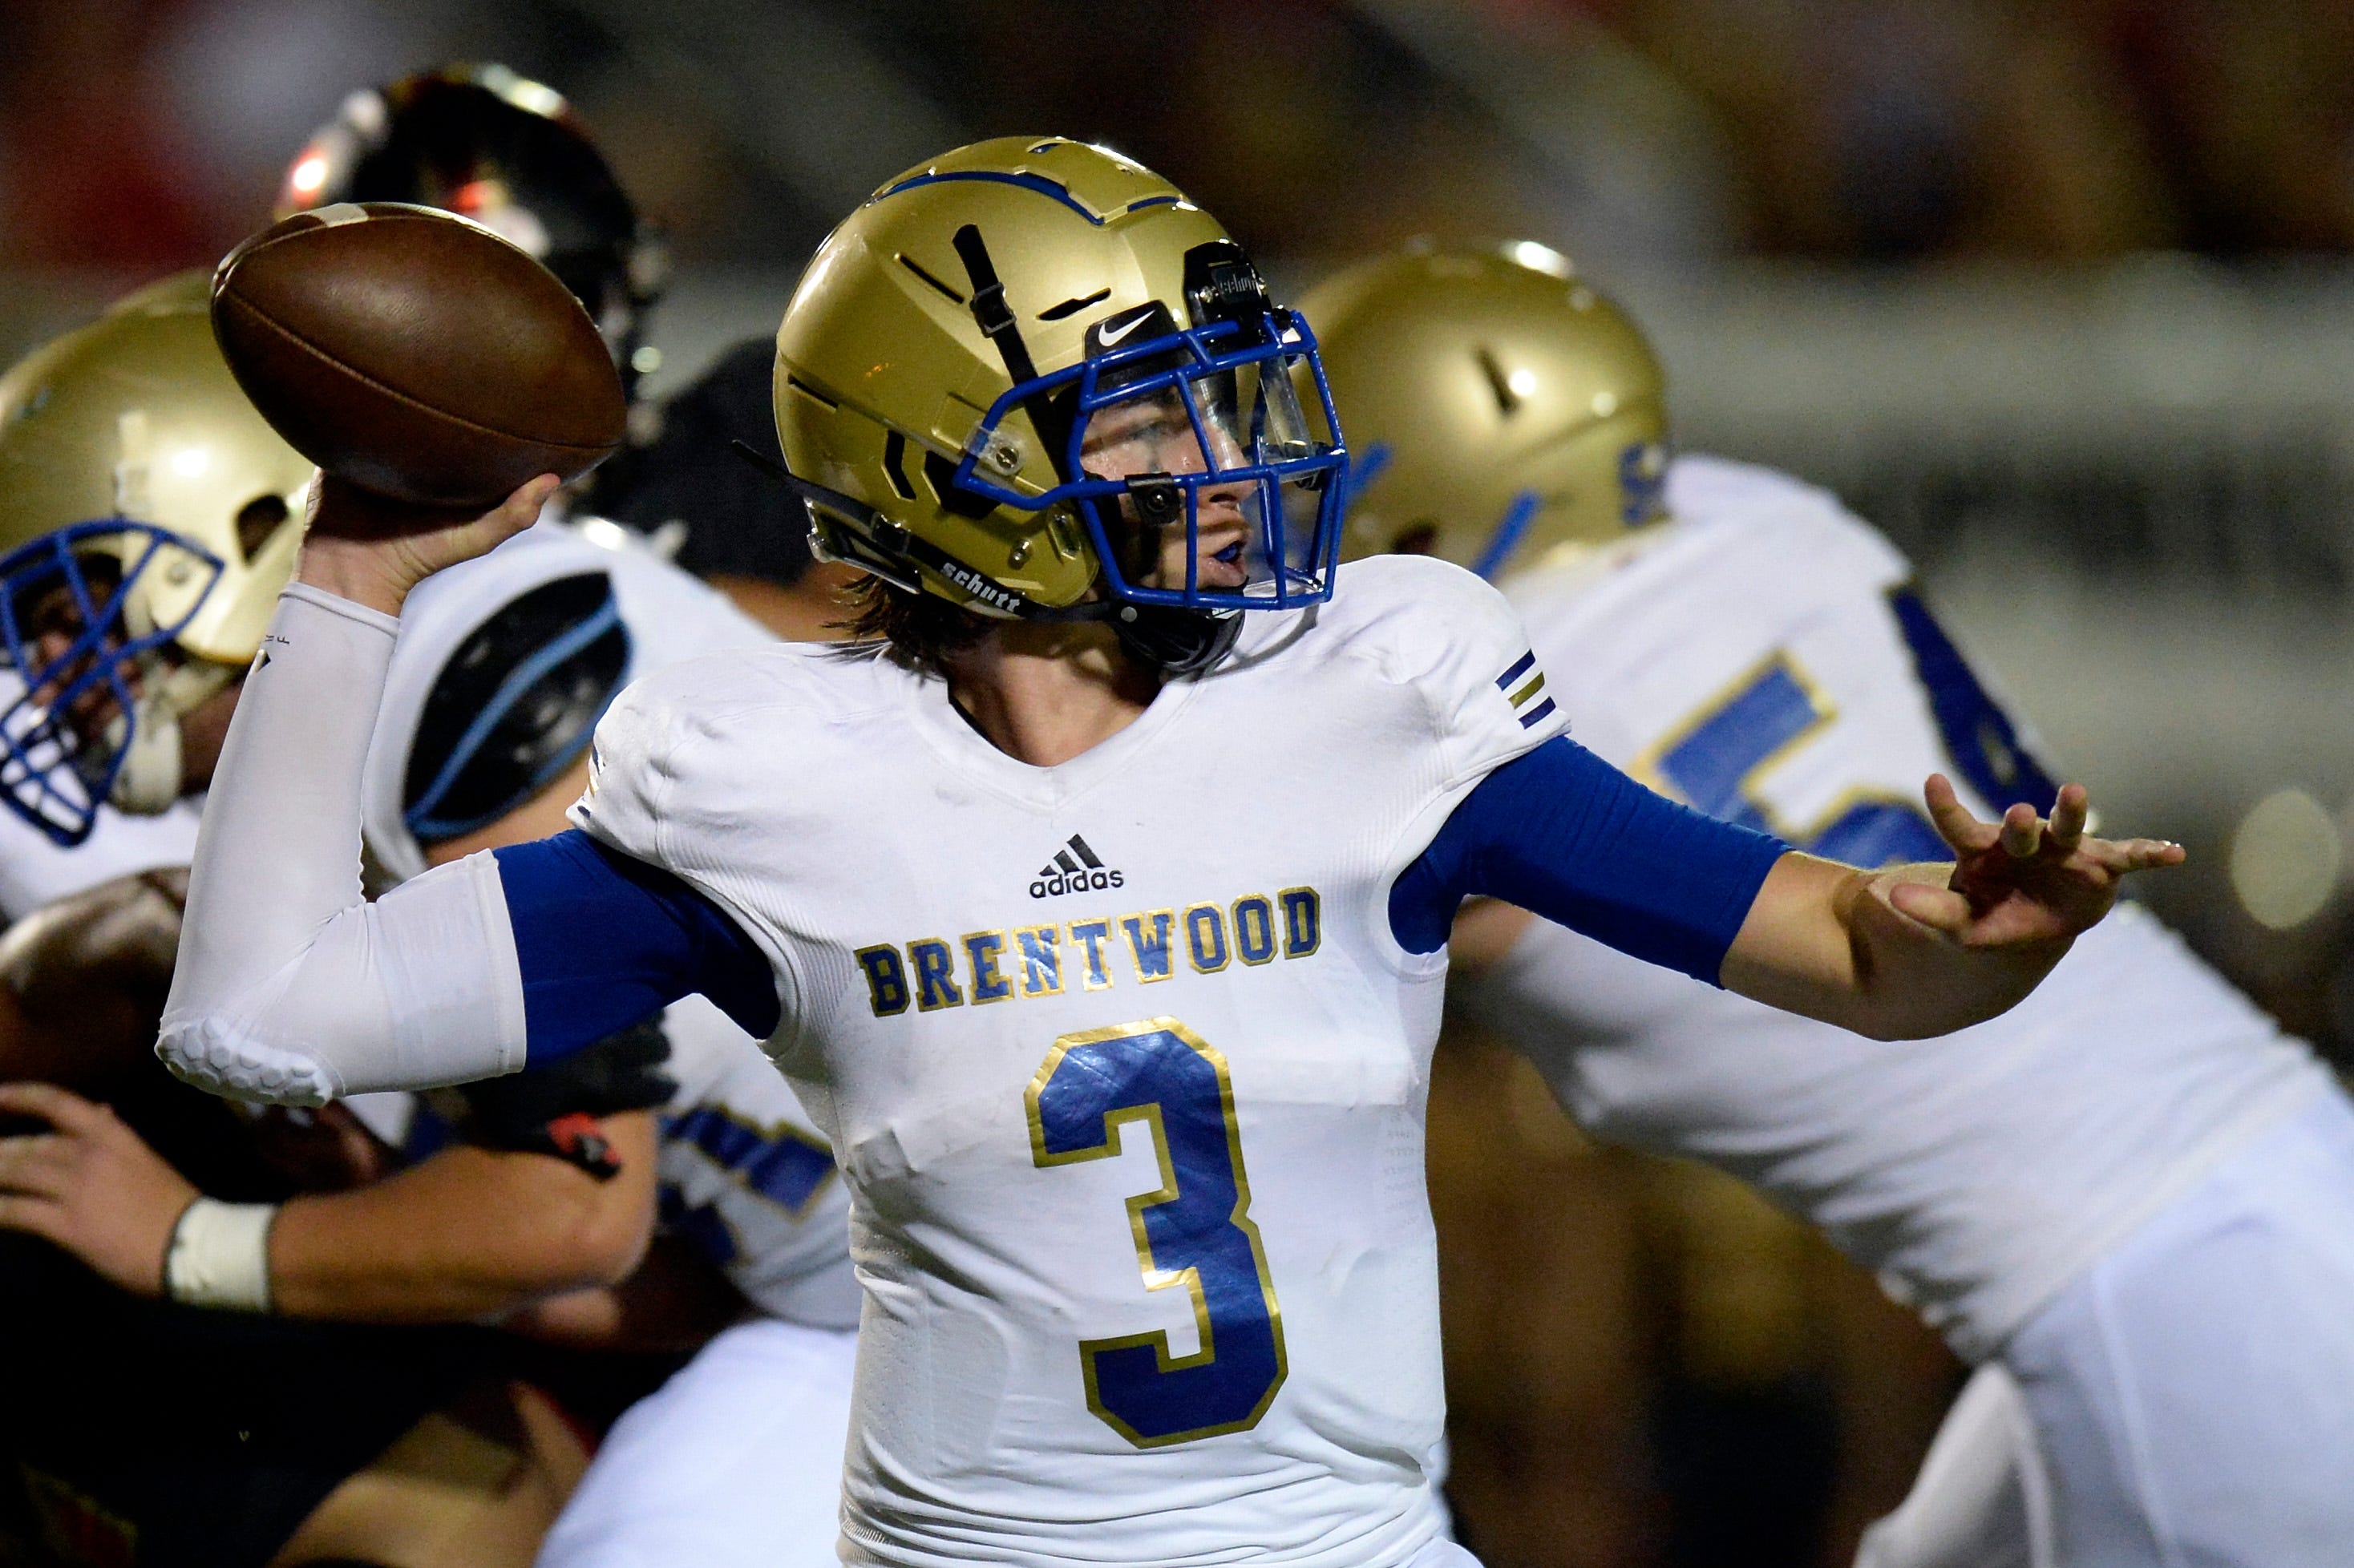 Watch: Brentwood's Cade Granzow throws TD pass to Chayce Bishop